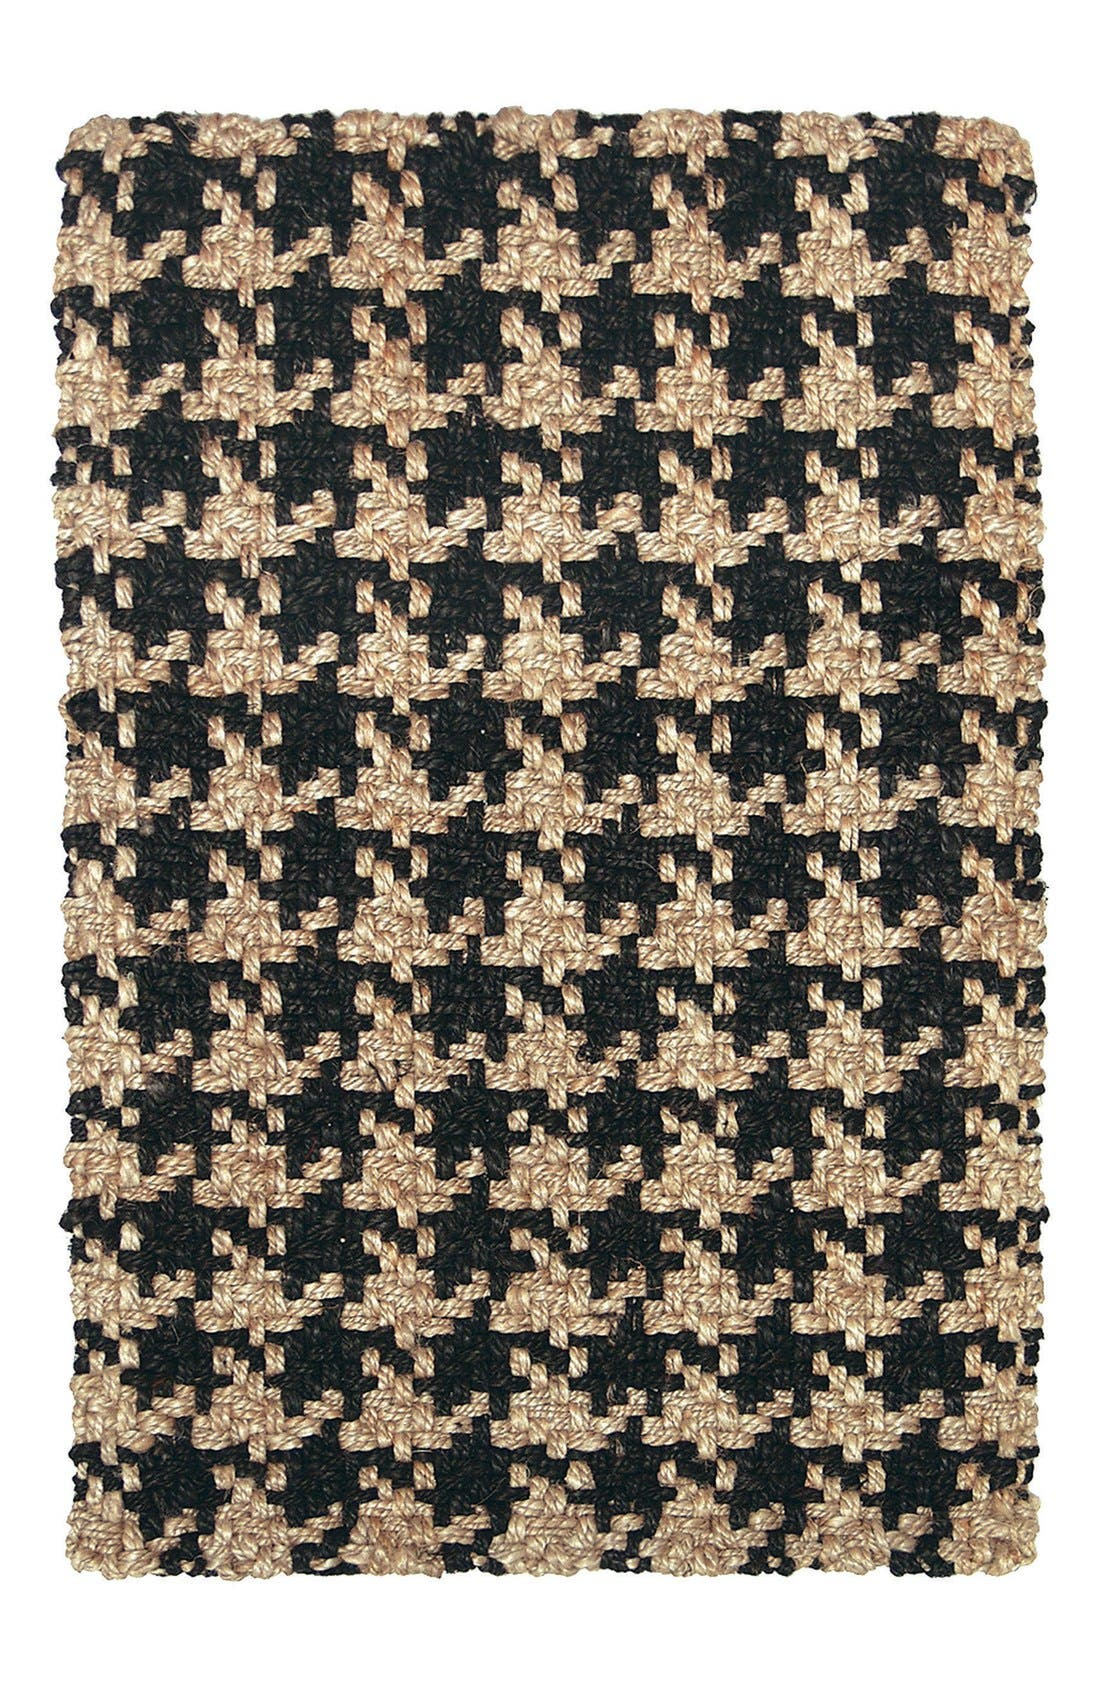 Houndstooth Rug,                         Main,                         color, Black